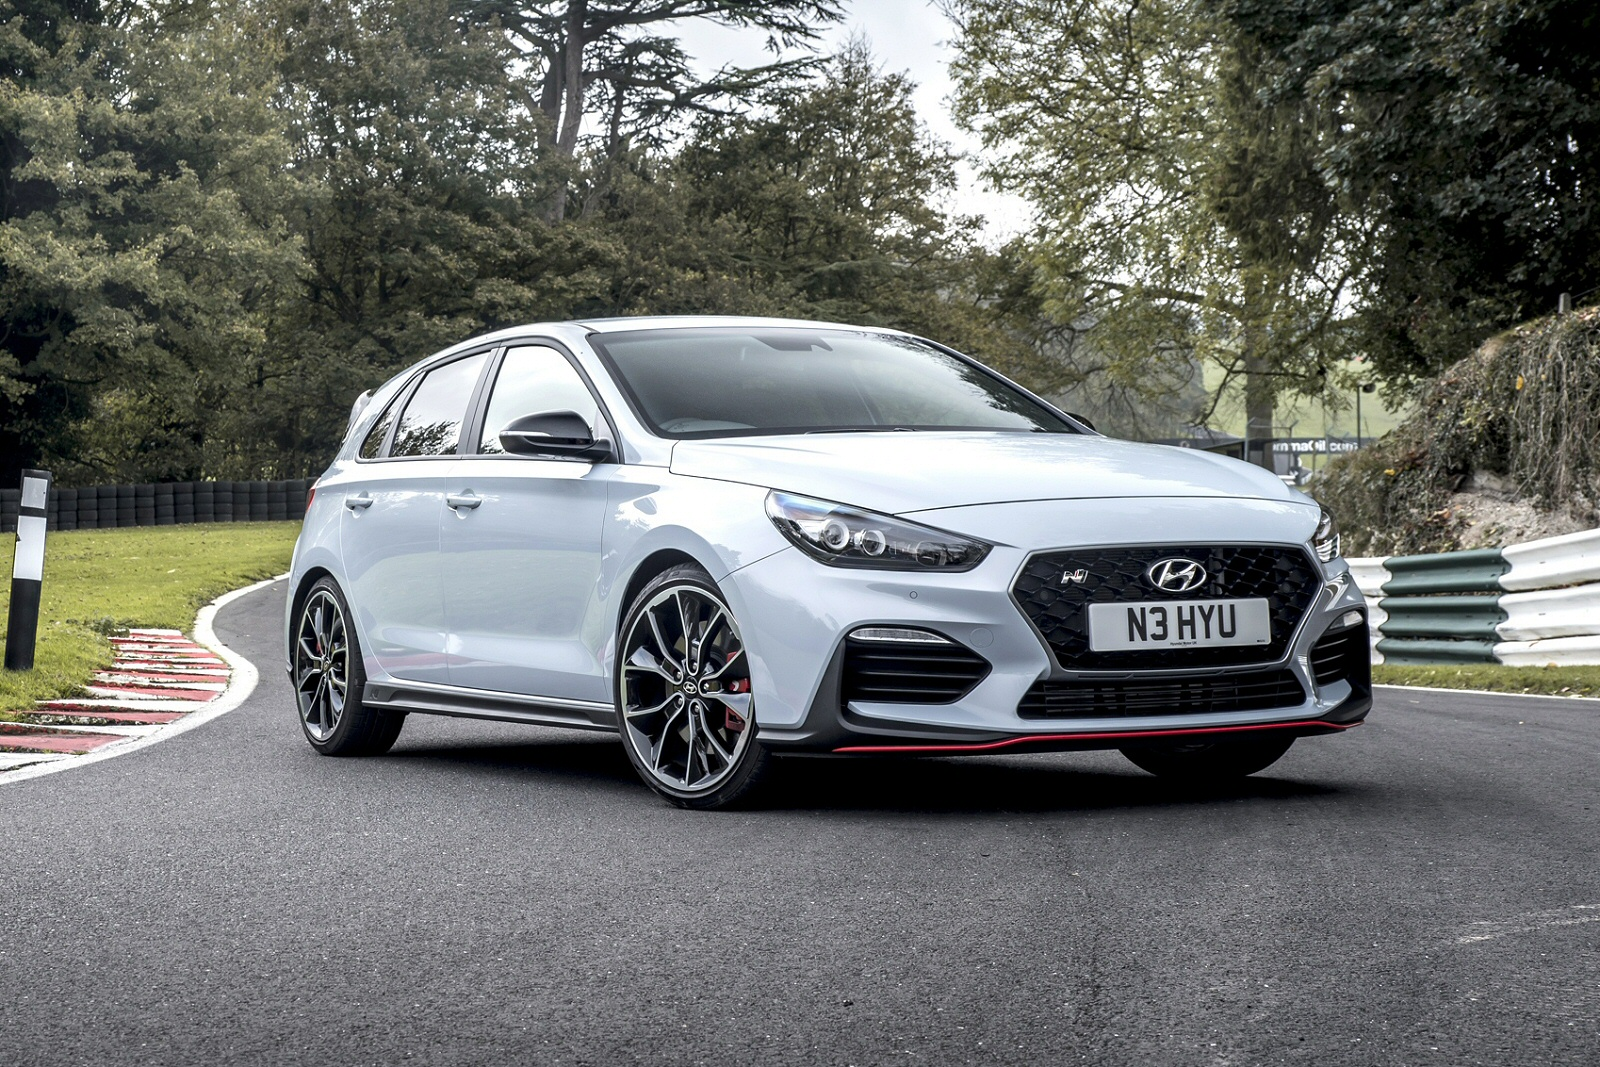 new hyundai i30 2 0t gdi n performance 5dr petrol. Black Bedroom Furniture Sets. Home Design Ideas